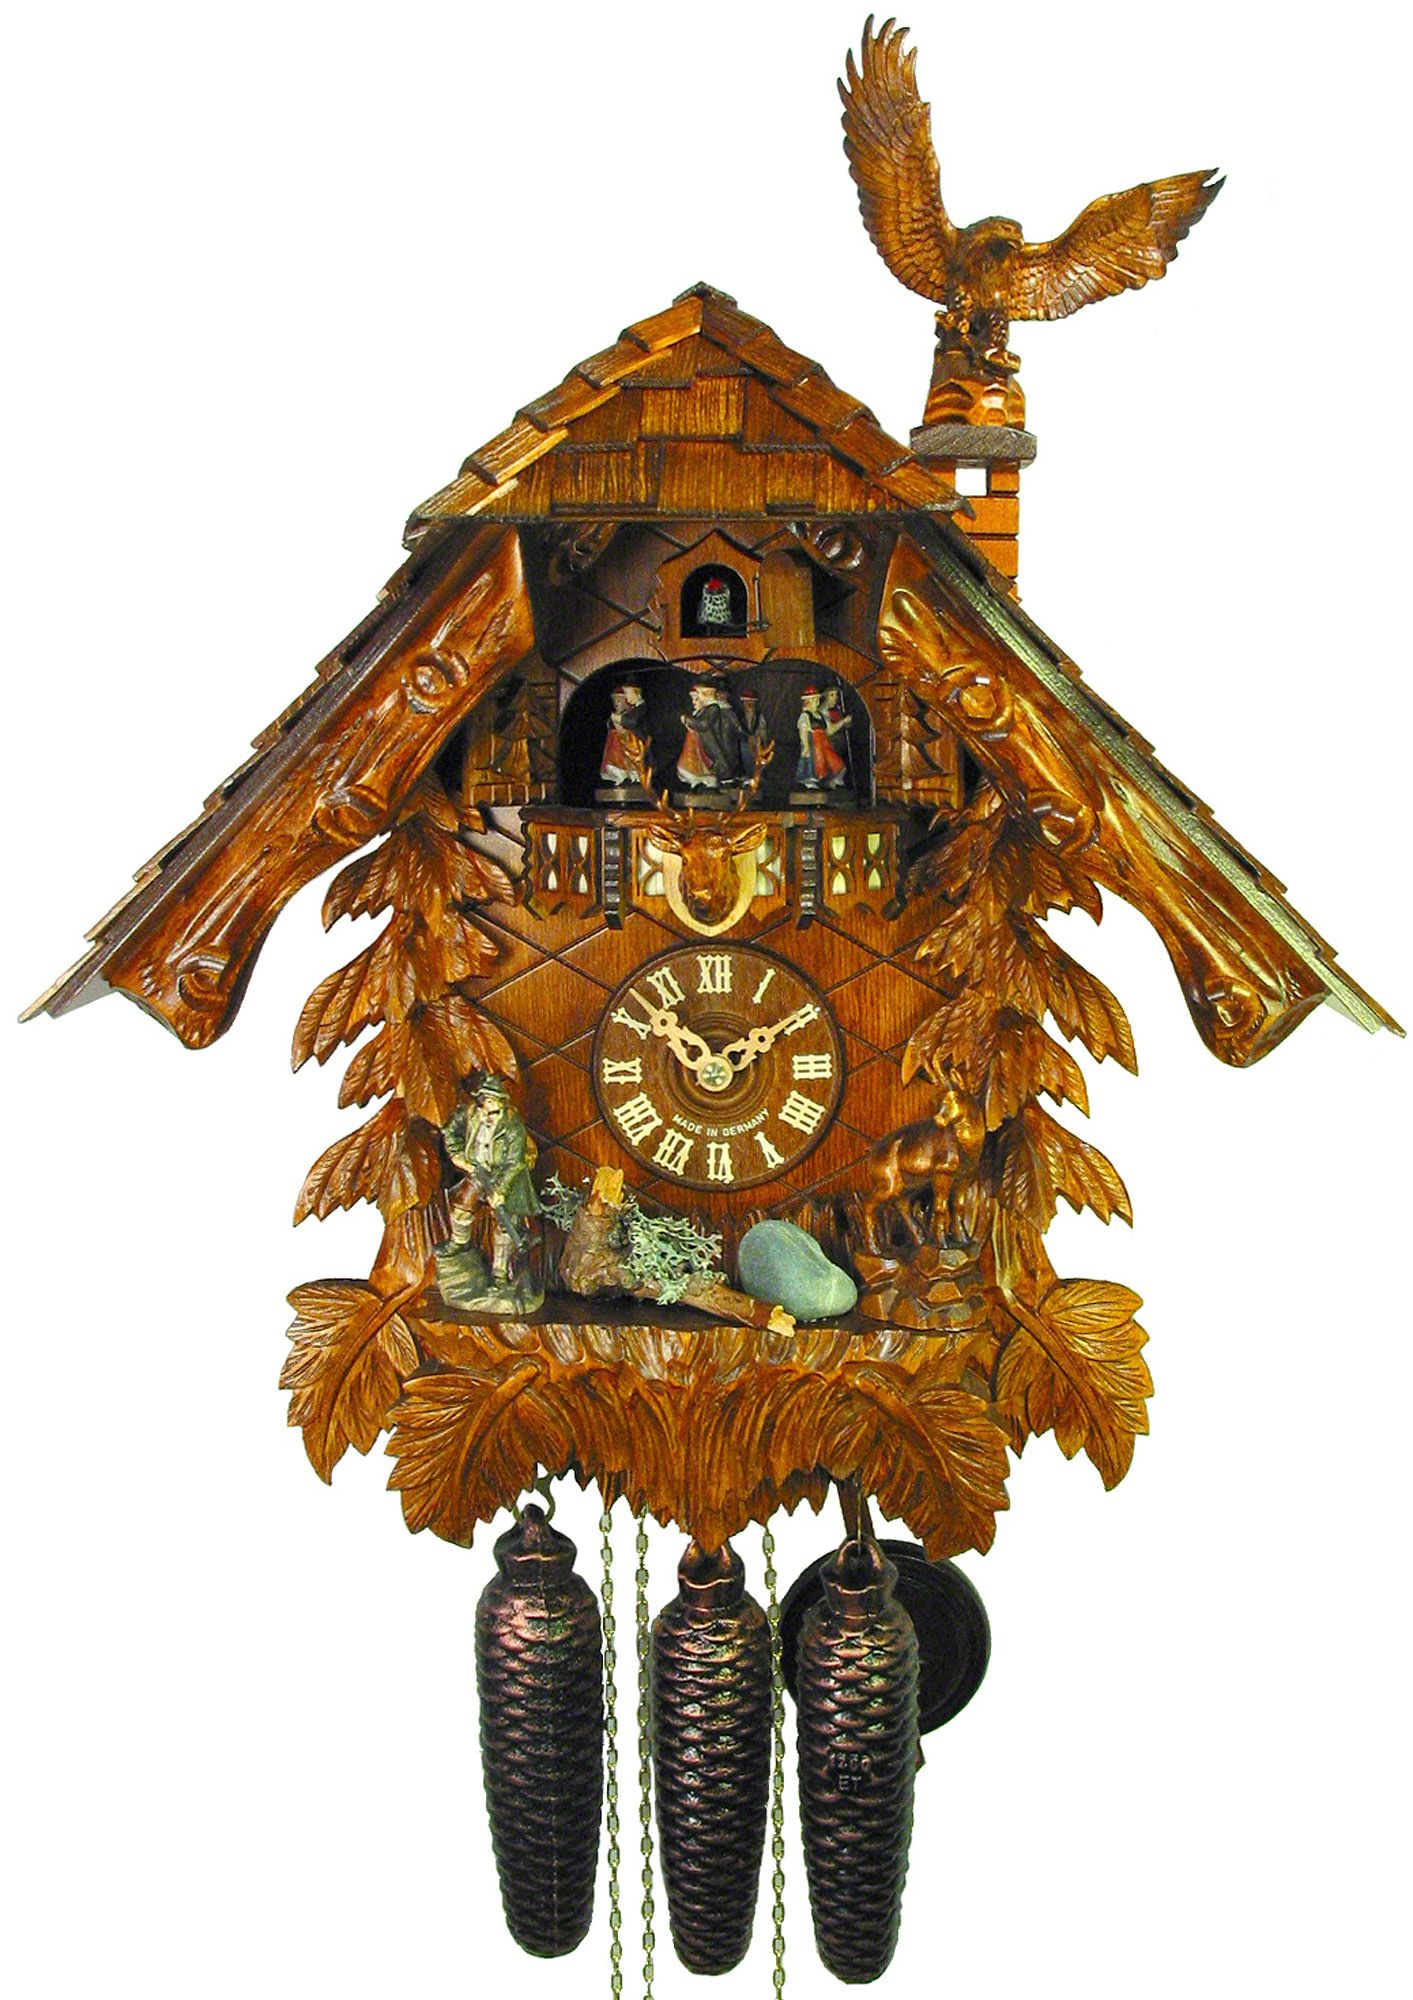 Cuckoo Clock 8 Day Movement Chalet Style 50cm By August Schwer 5 0471 01 C Clock Antique Wall Clocks Classic Clocks